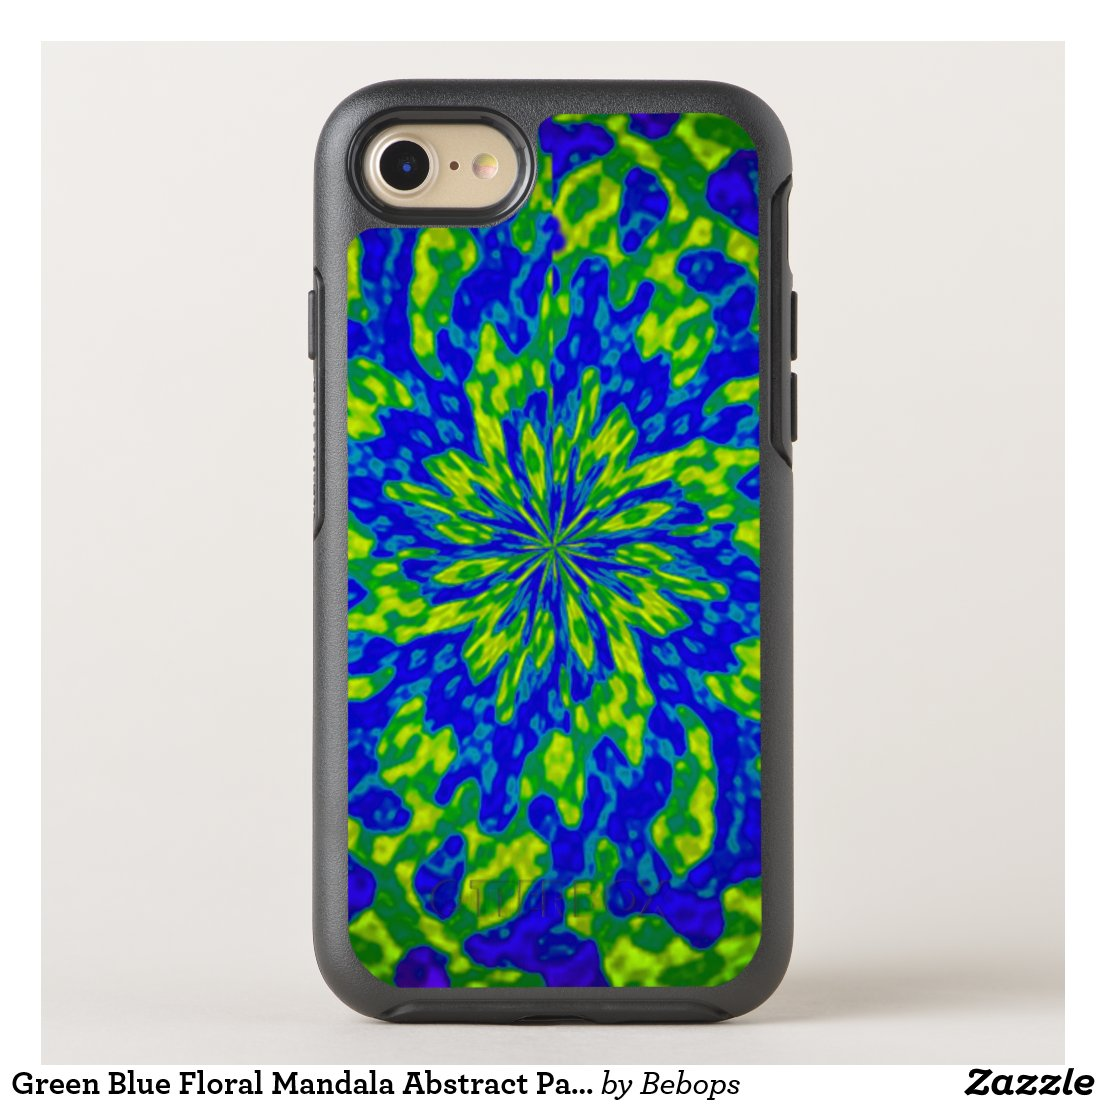 Green Blue Floral Mandala Abstract Pattern OtterBox Symmetry iPhone 7 Case